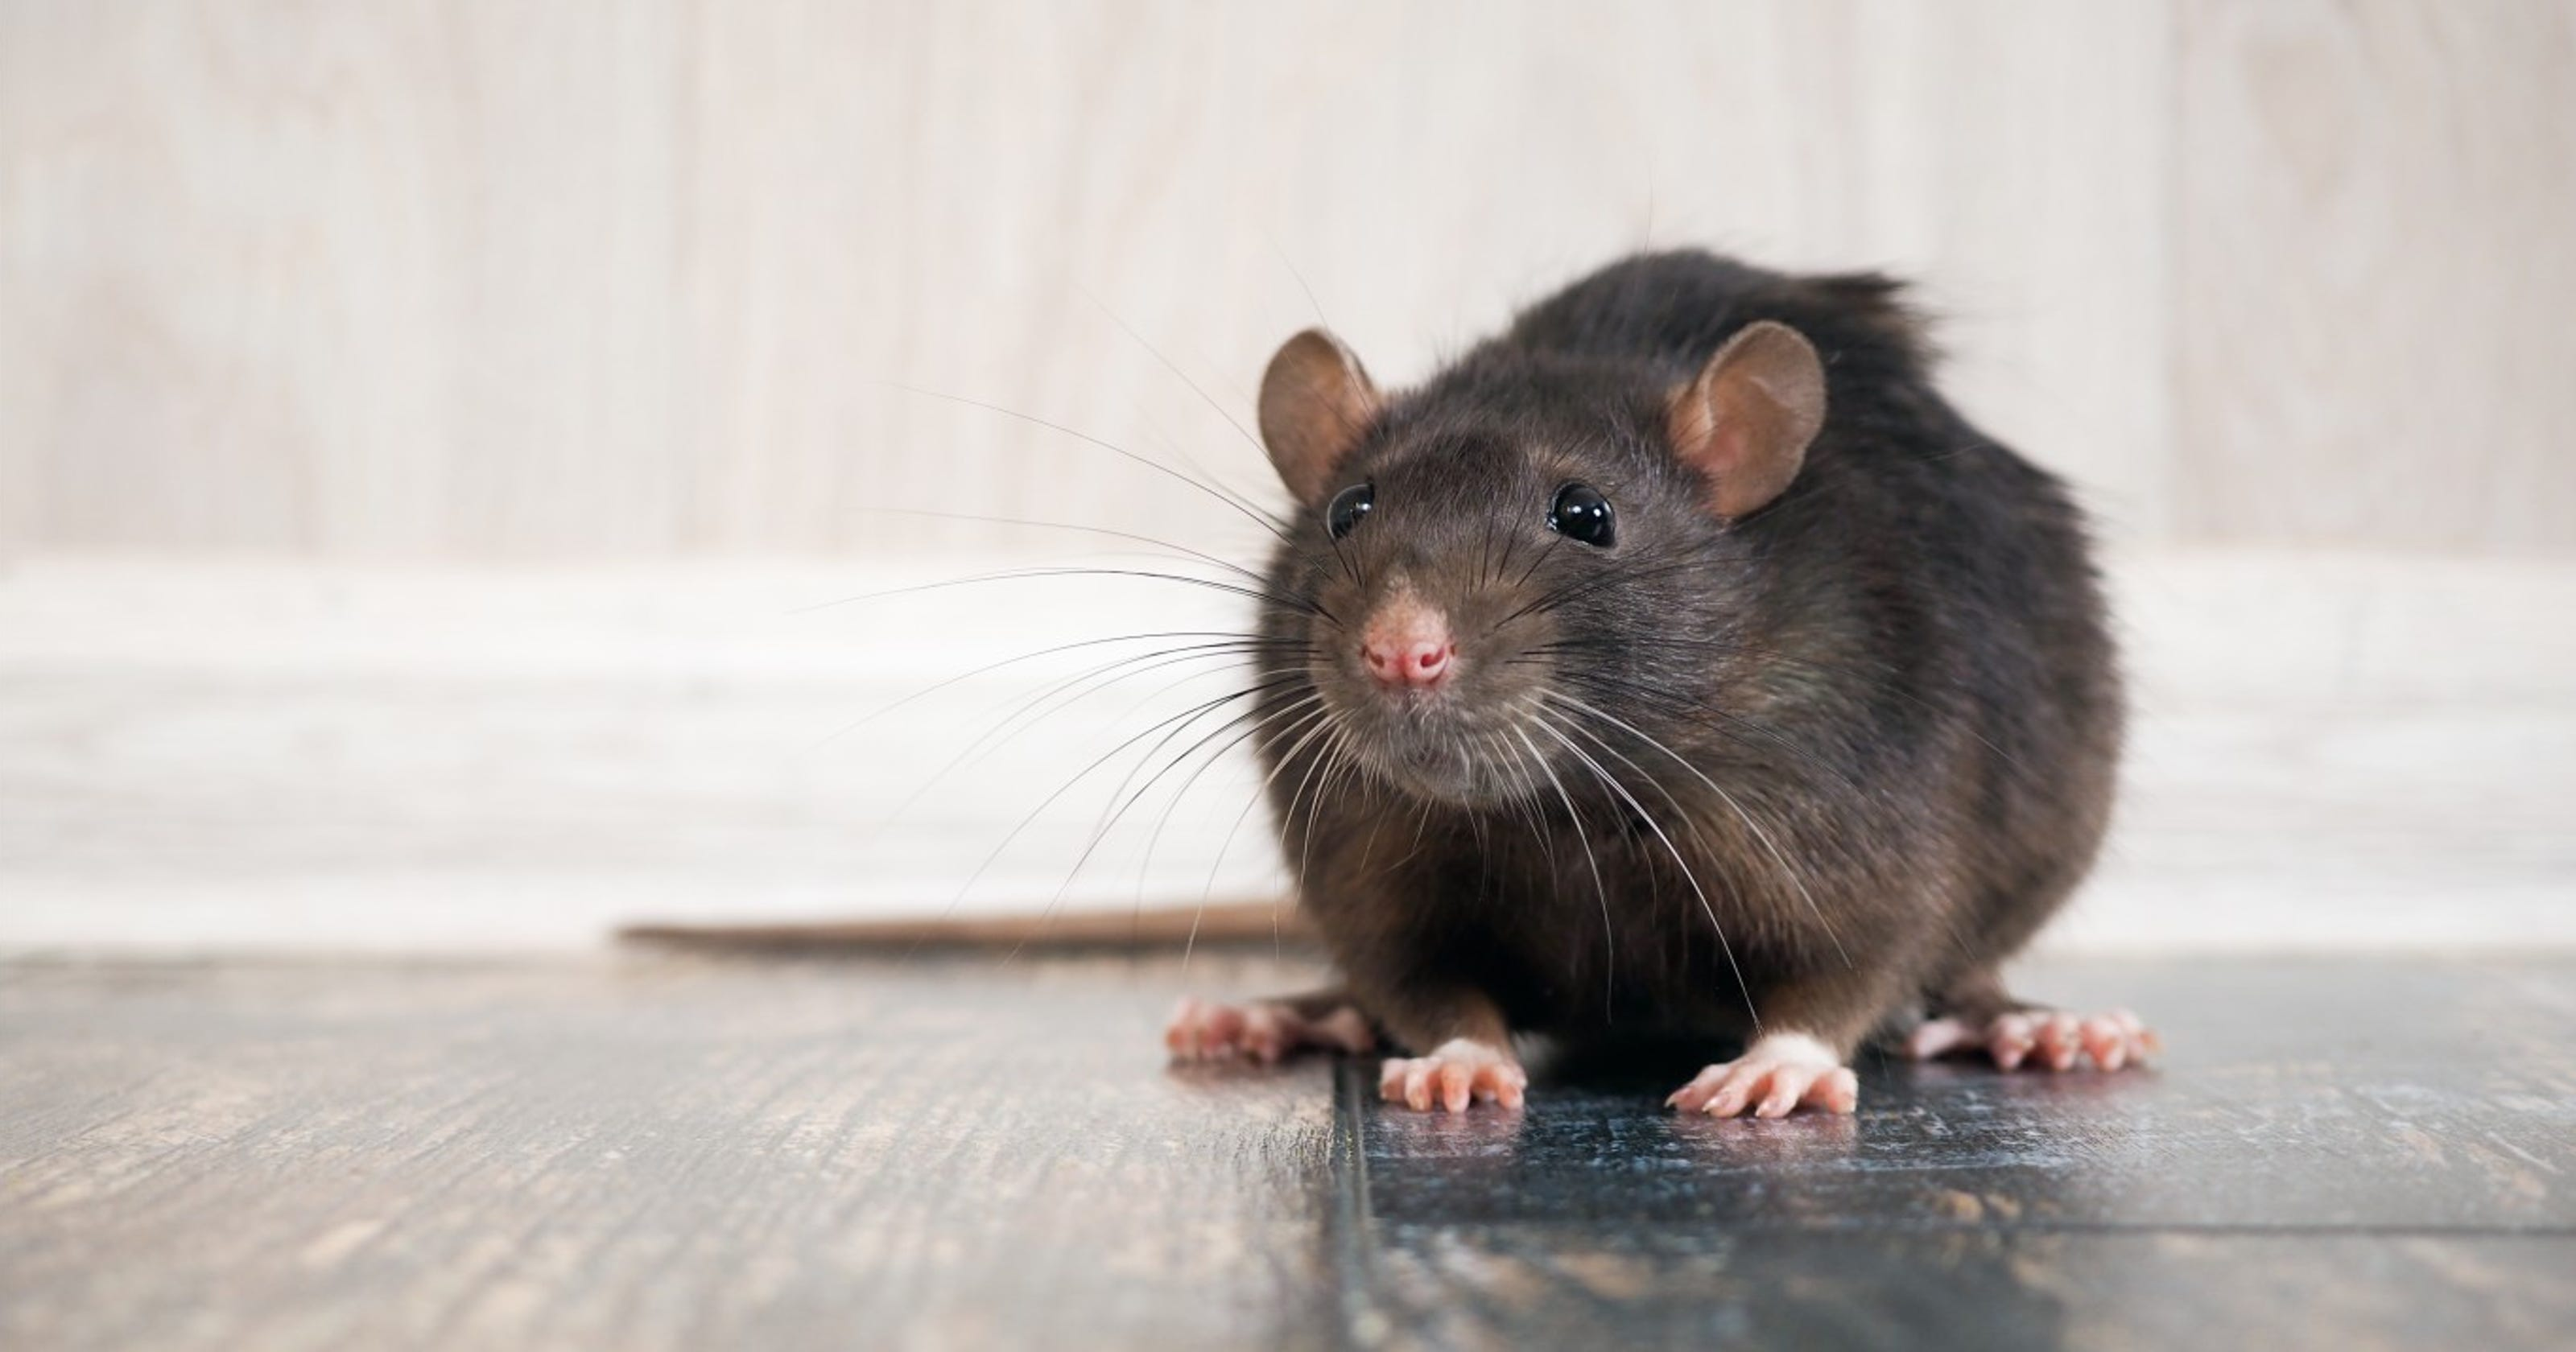 Woman living in van gives up all 300 of her rats...